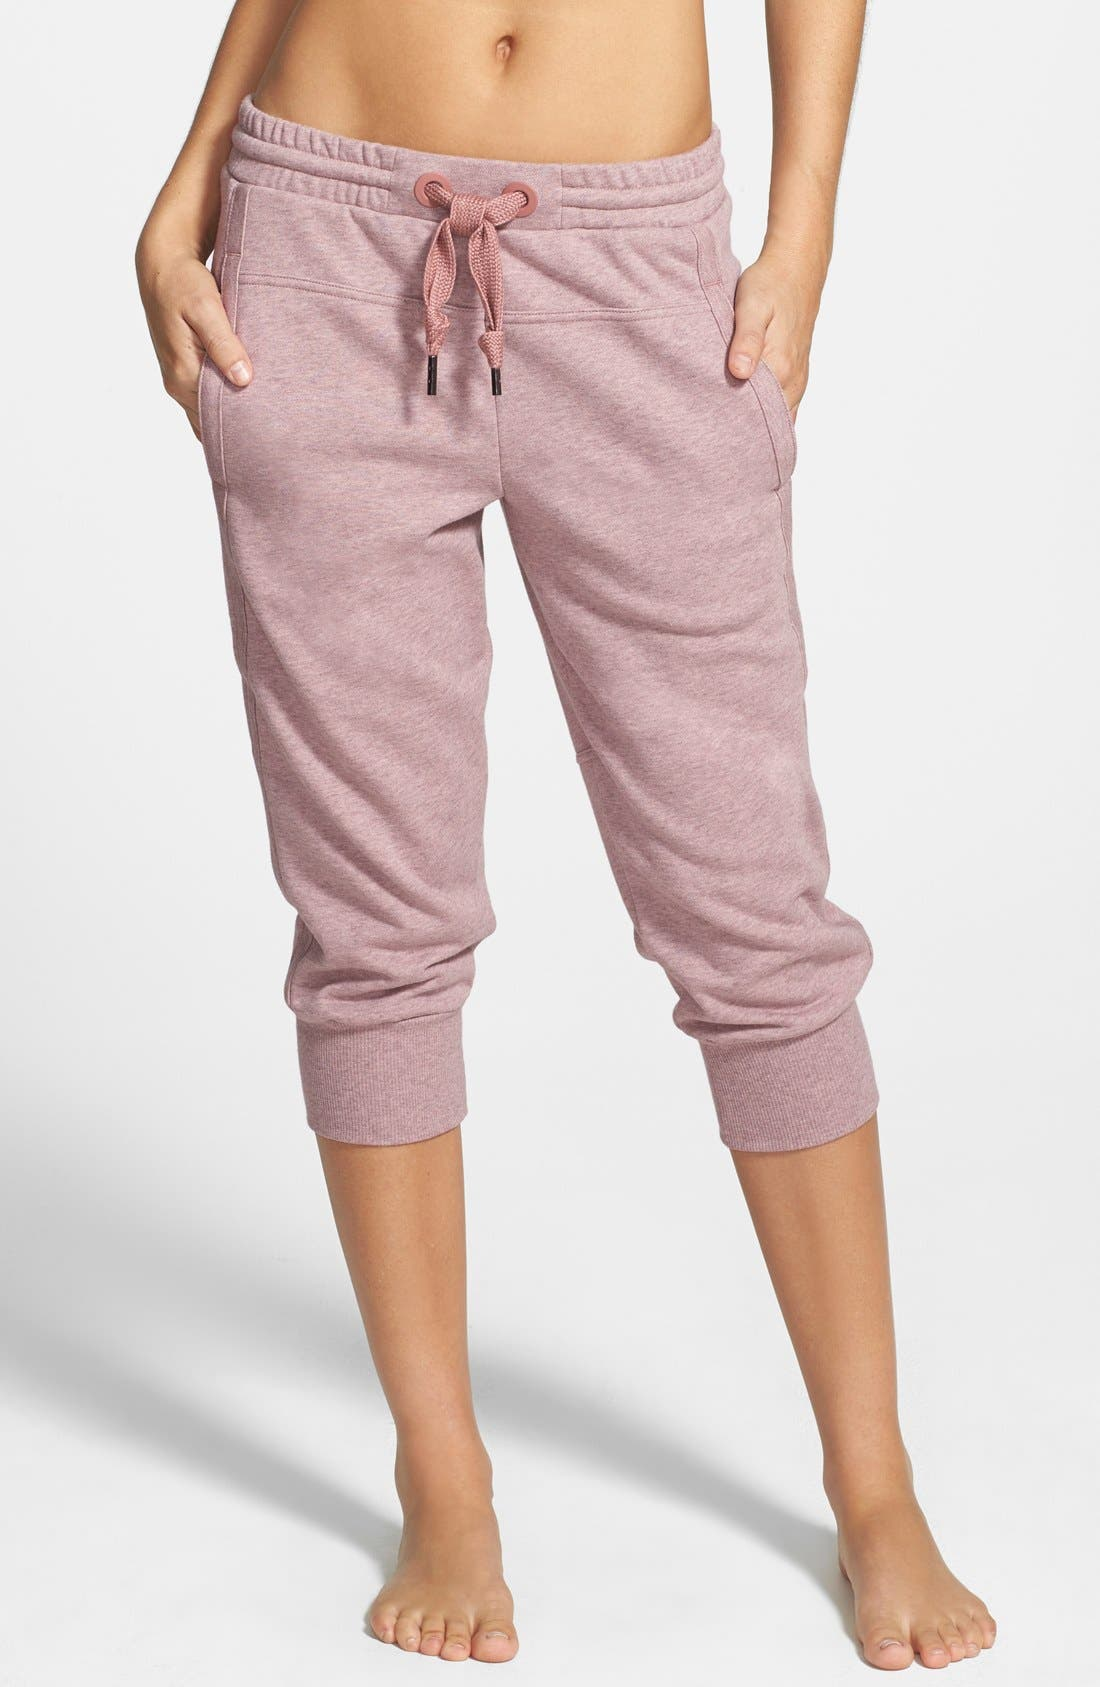 Main Image - adidas by Stella McCartney 'Essentials' Capris Sweatpants